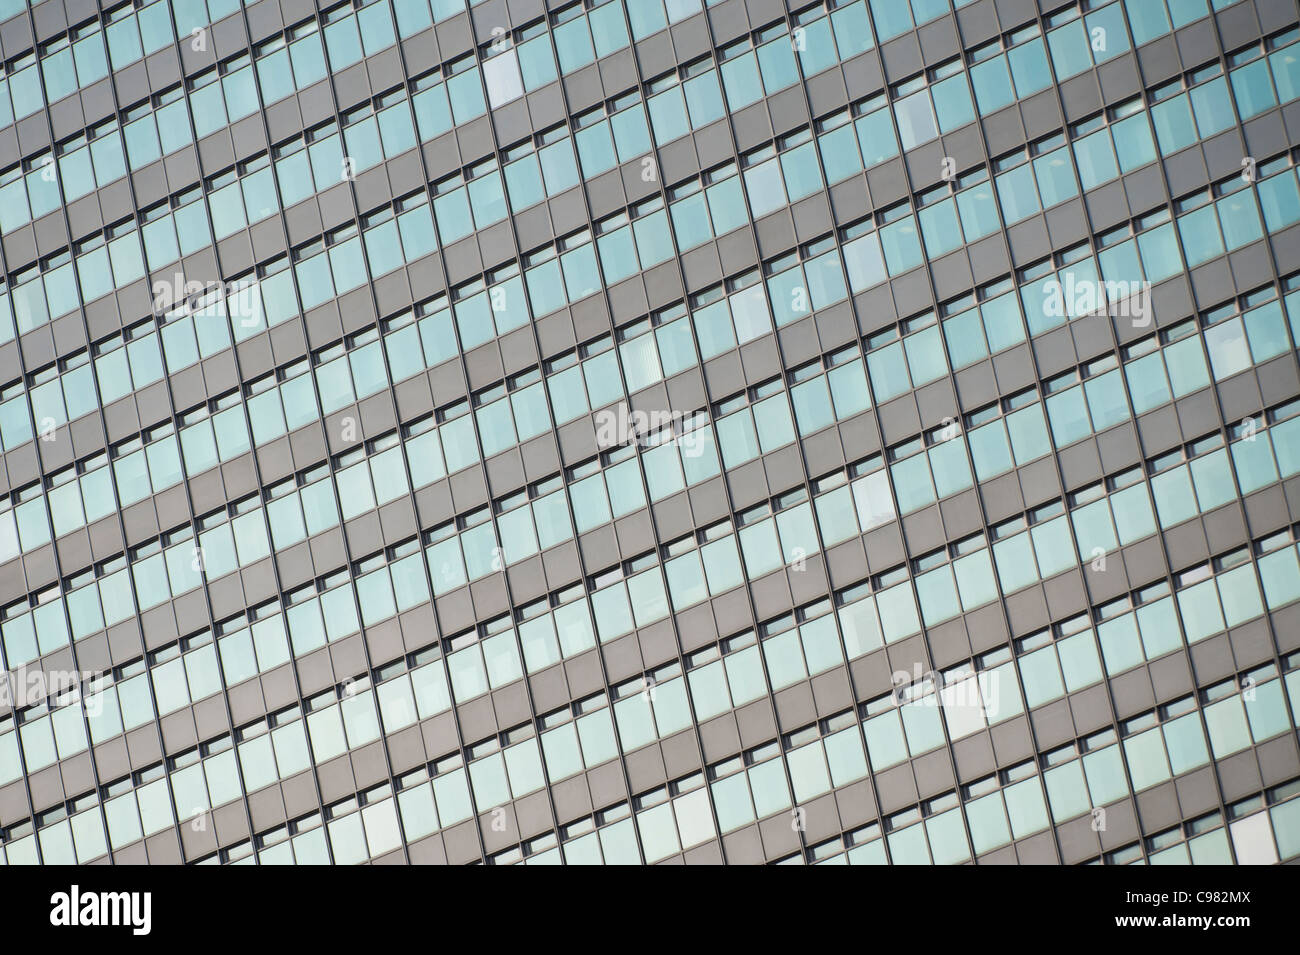 A close up of grid windows of City Tower Piccadilly, Manchester. - Stock Image